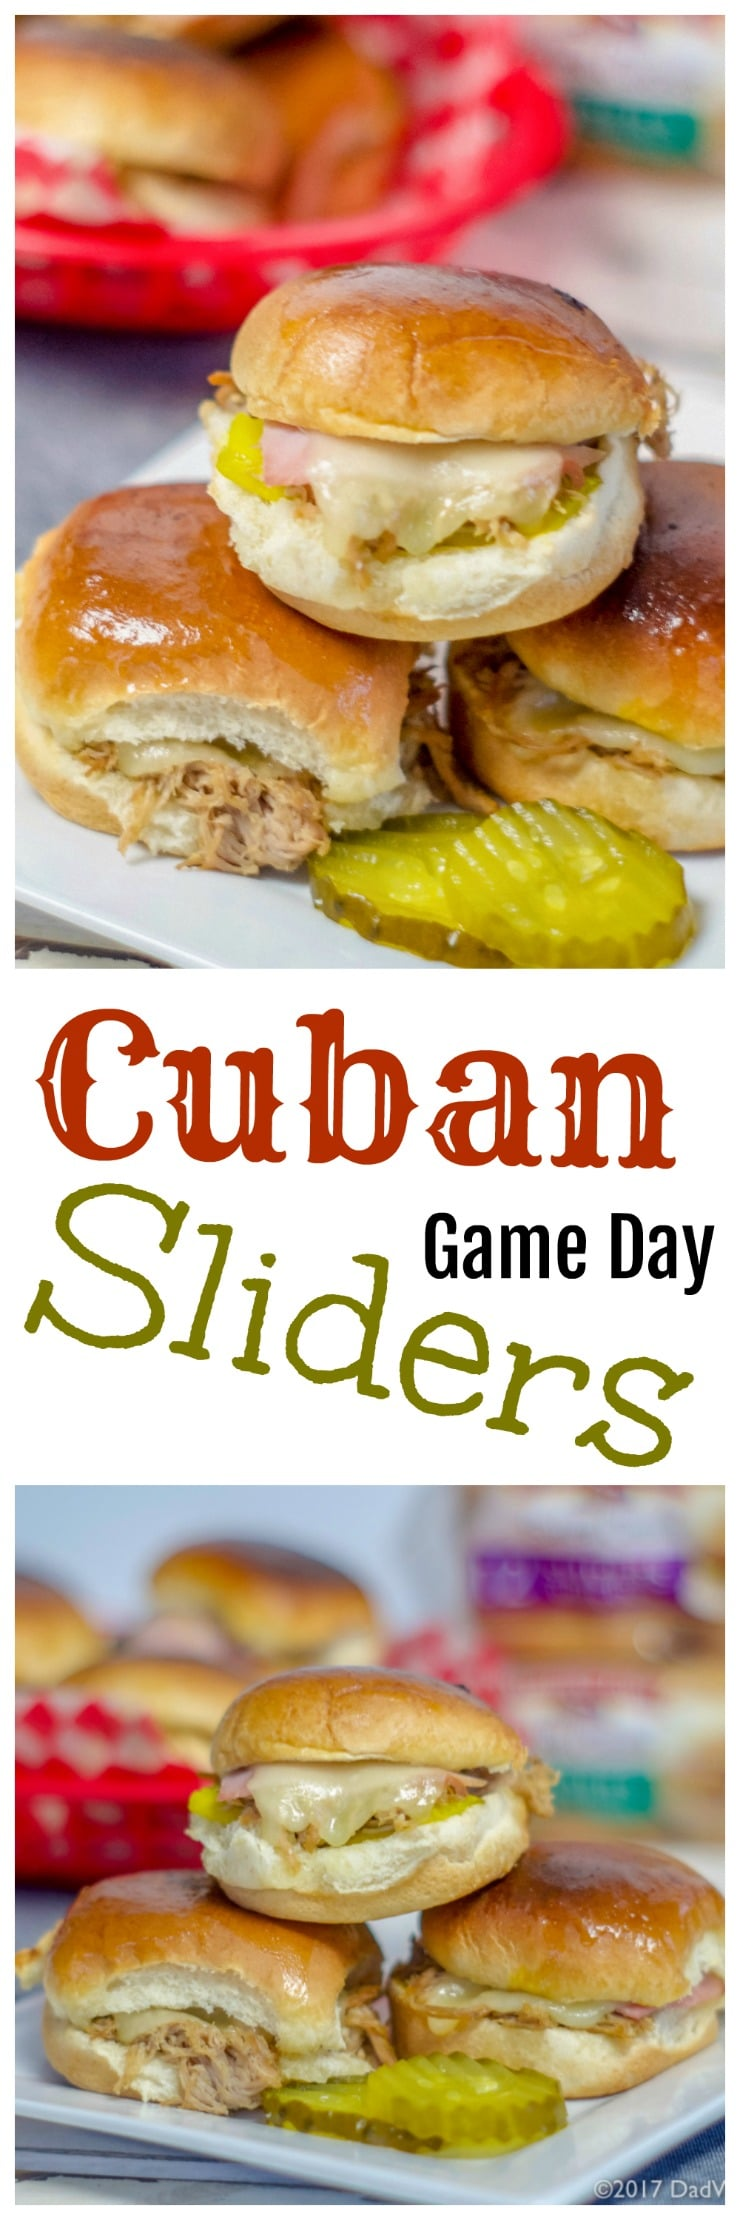 When you want a change from the ordinary hamburger slider, try these Instant Pot Cuban Sliders, sure to be a game day winner. All the flavor of a great Cuban including fall off the bone pork shoulder, ham, swiss cheese, pickles, mustard, on a @PepperidgeFarm® soft slider bun.   #Ad #LittleBunsBigWin #BakedWithCare #Gameday #Sliders #Instantpot